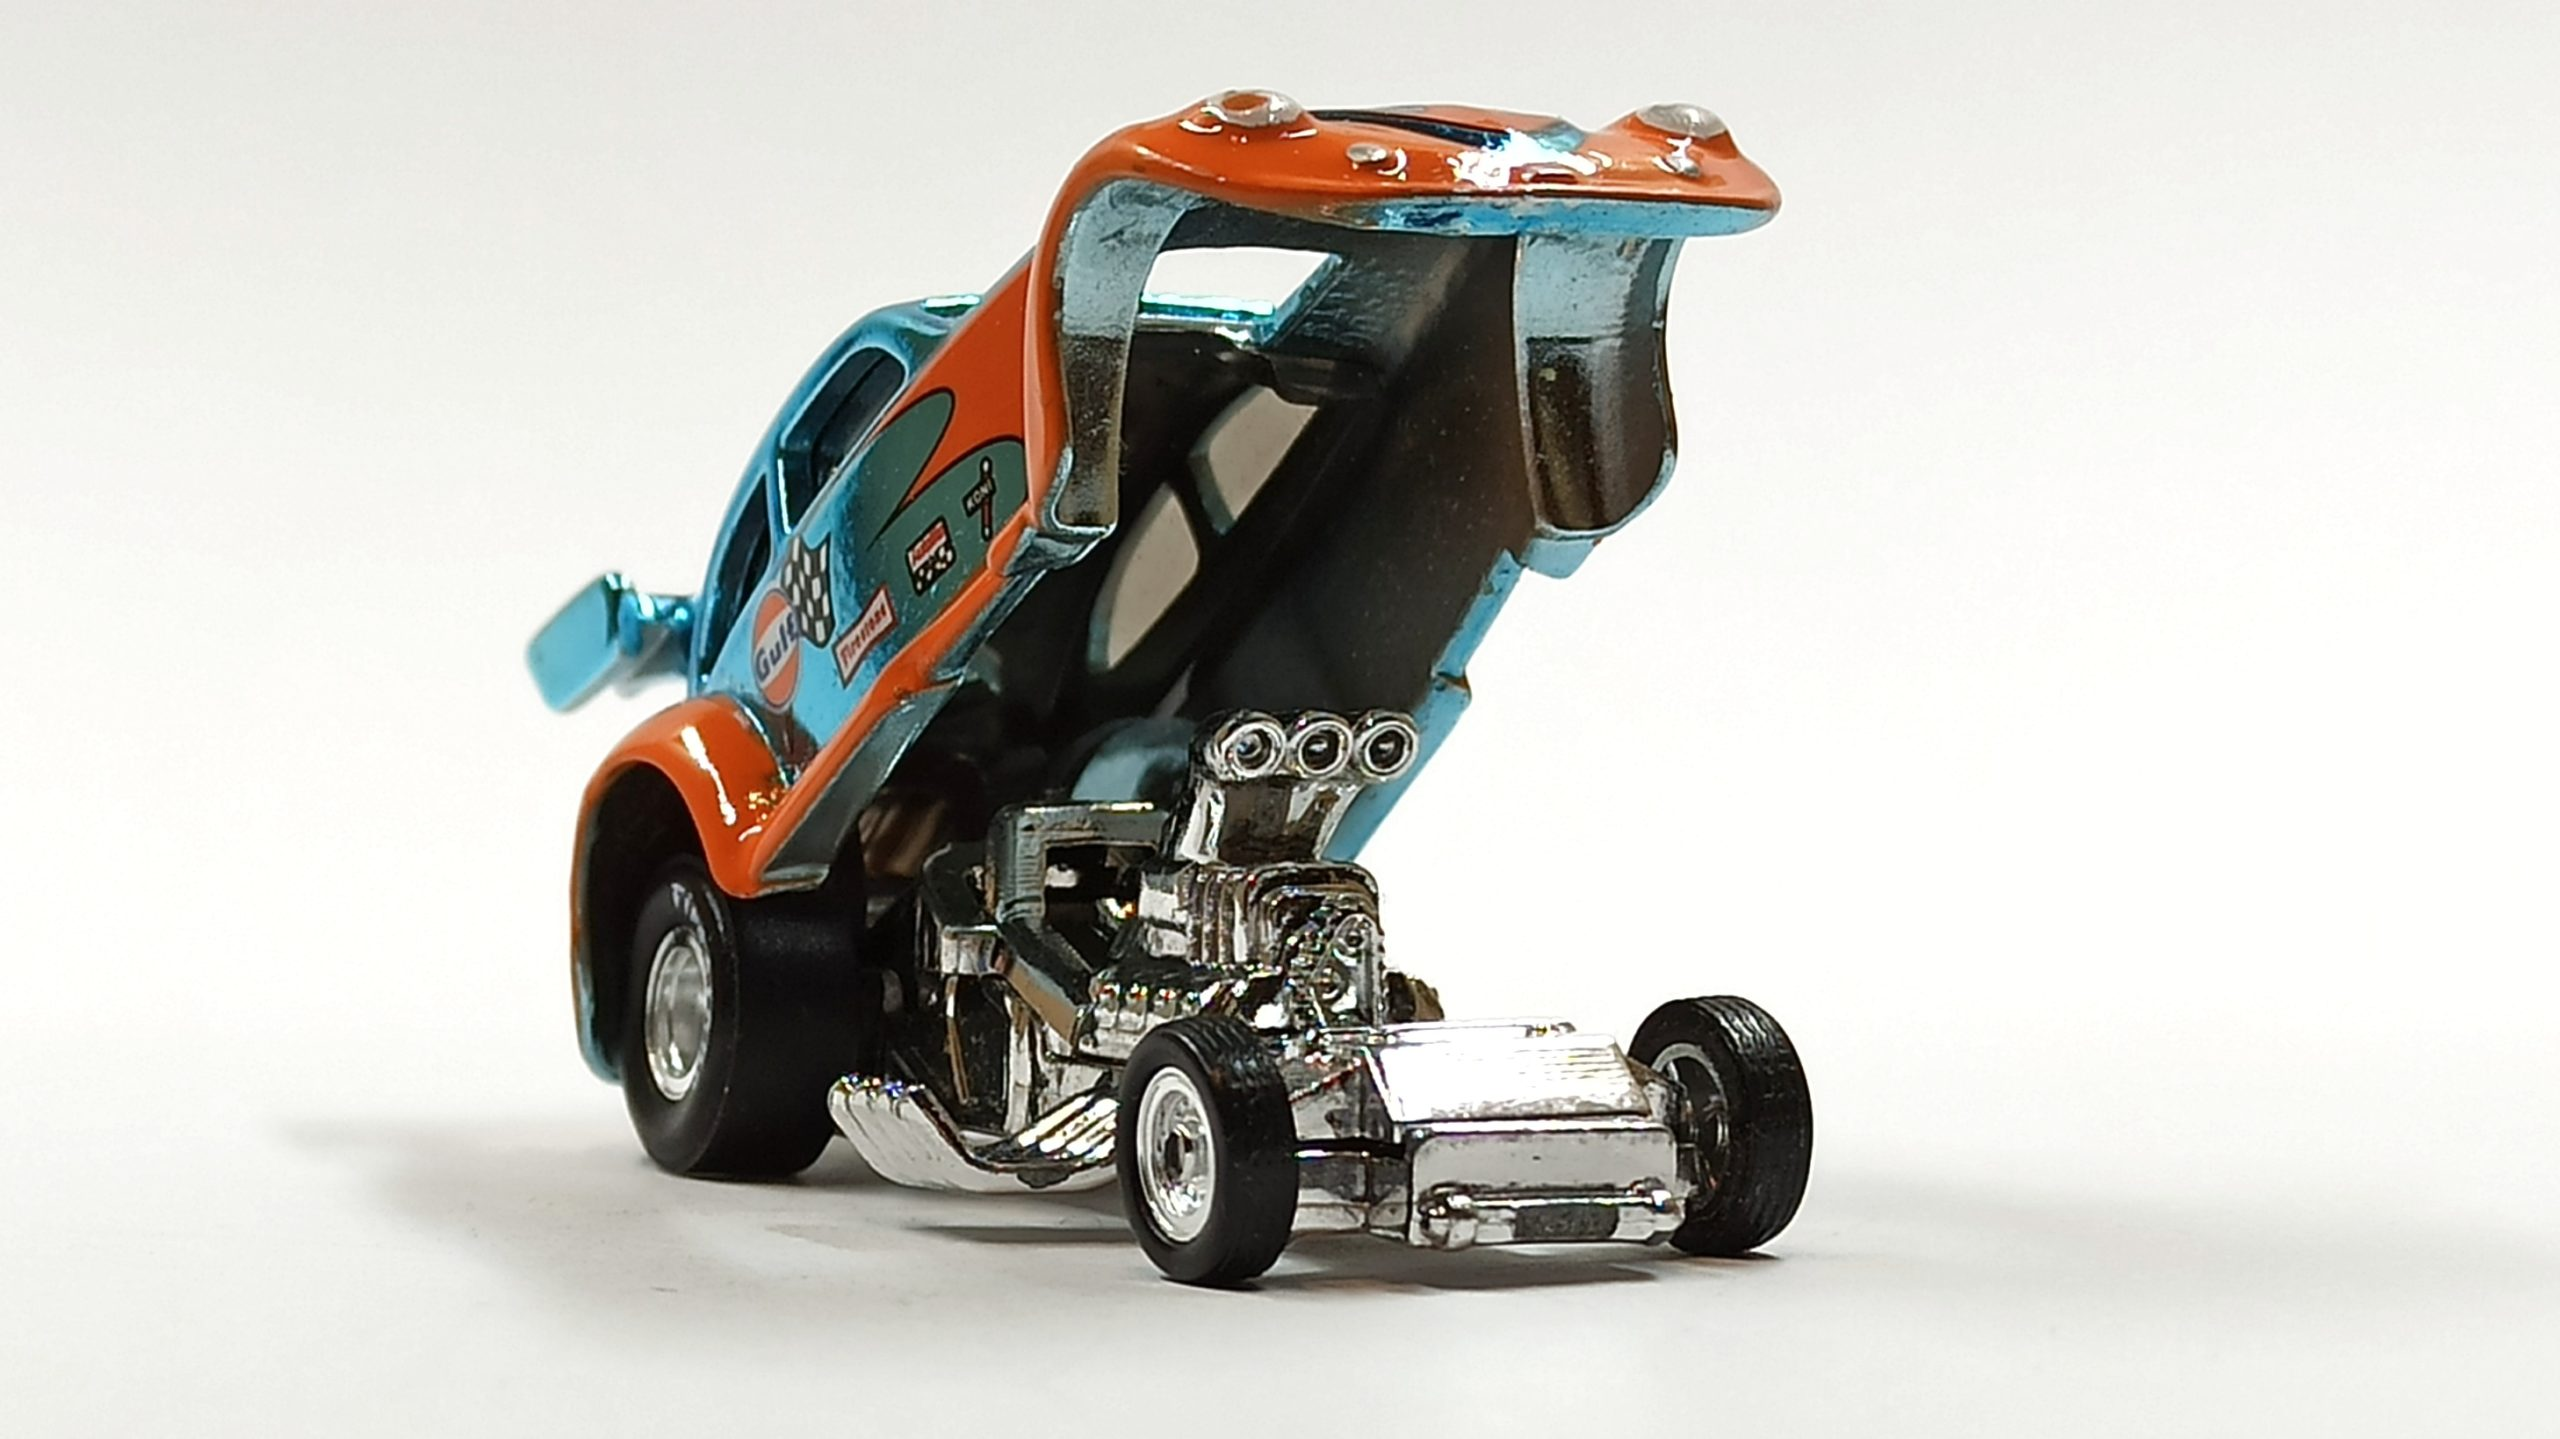 Hot Wheels Custom '56 Volkswagen Drag Beetle (Y0452) 2013 HWC Gulf Racing (3/4) (1 of 4.000) spectraflame light blue (Gulf) front angle open chassis